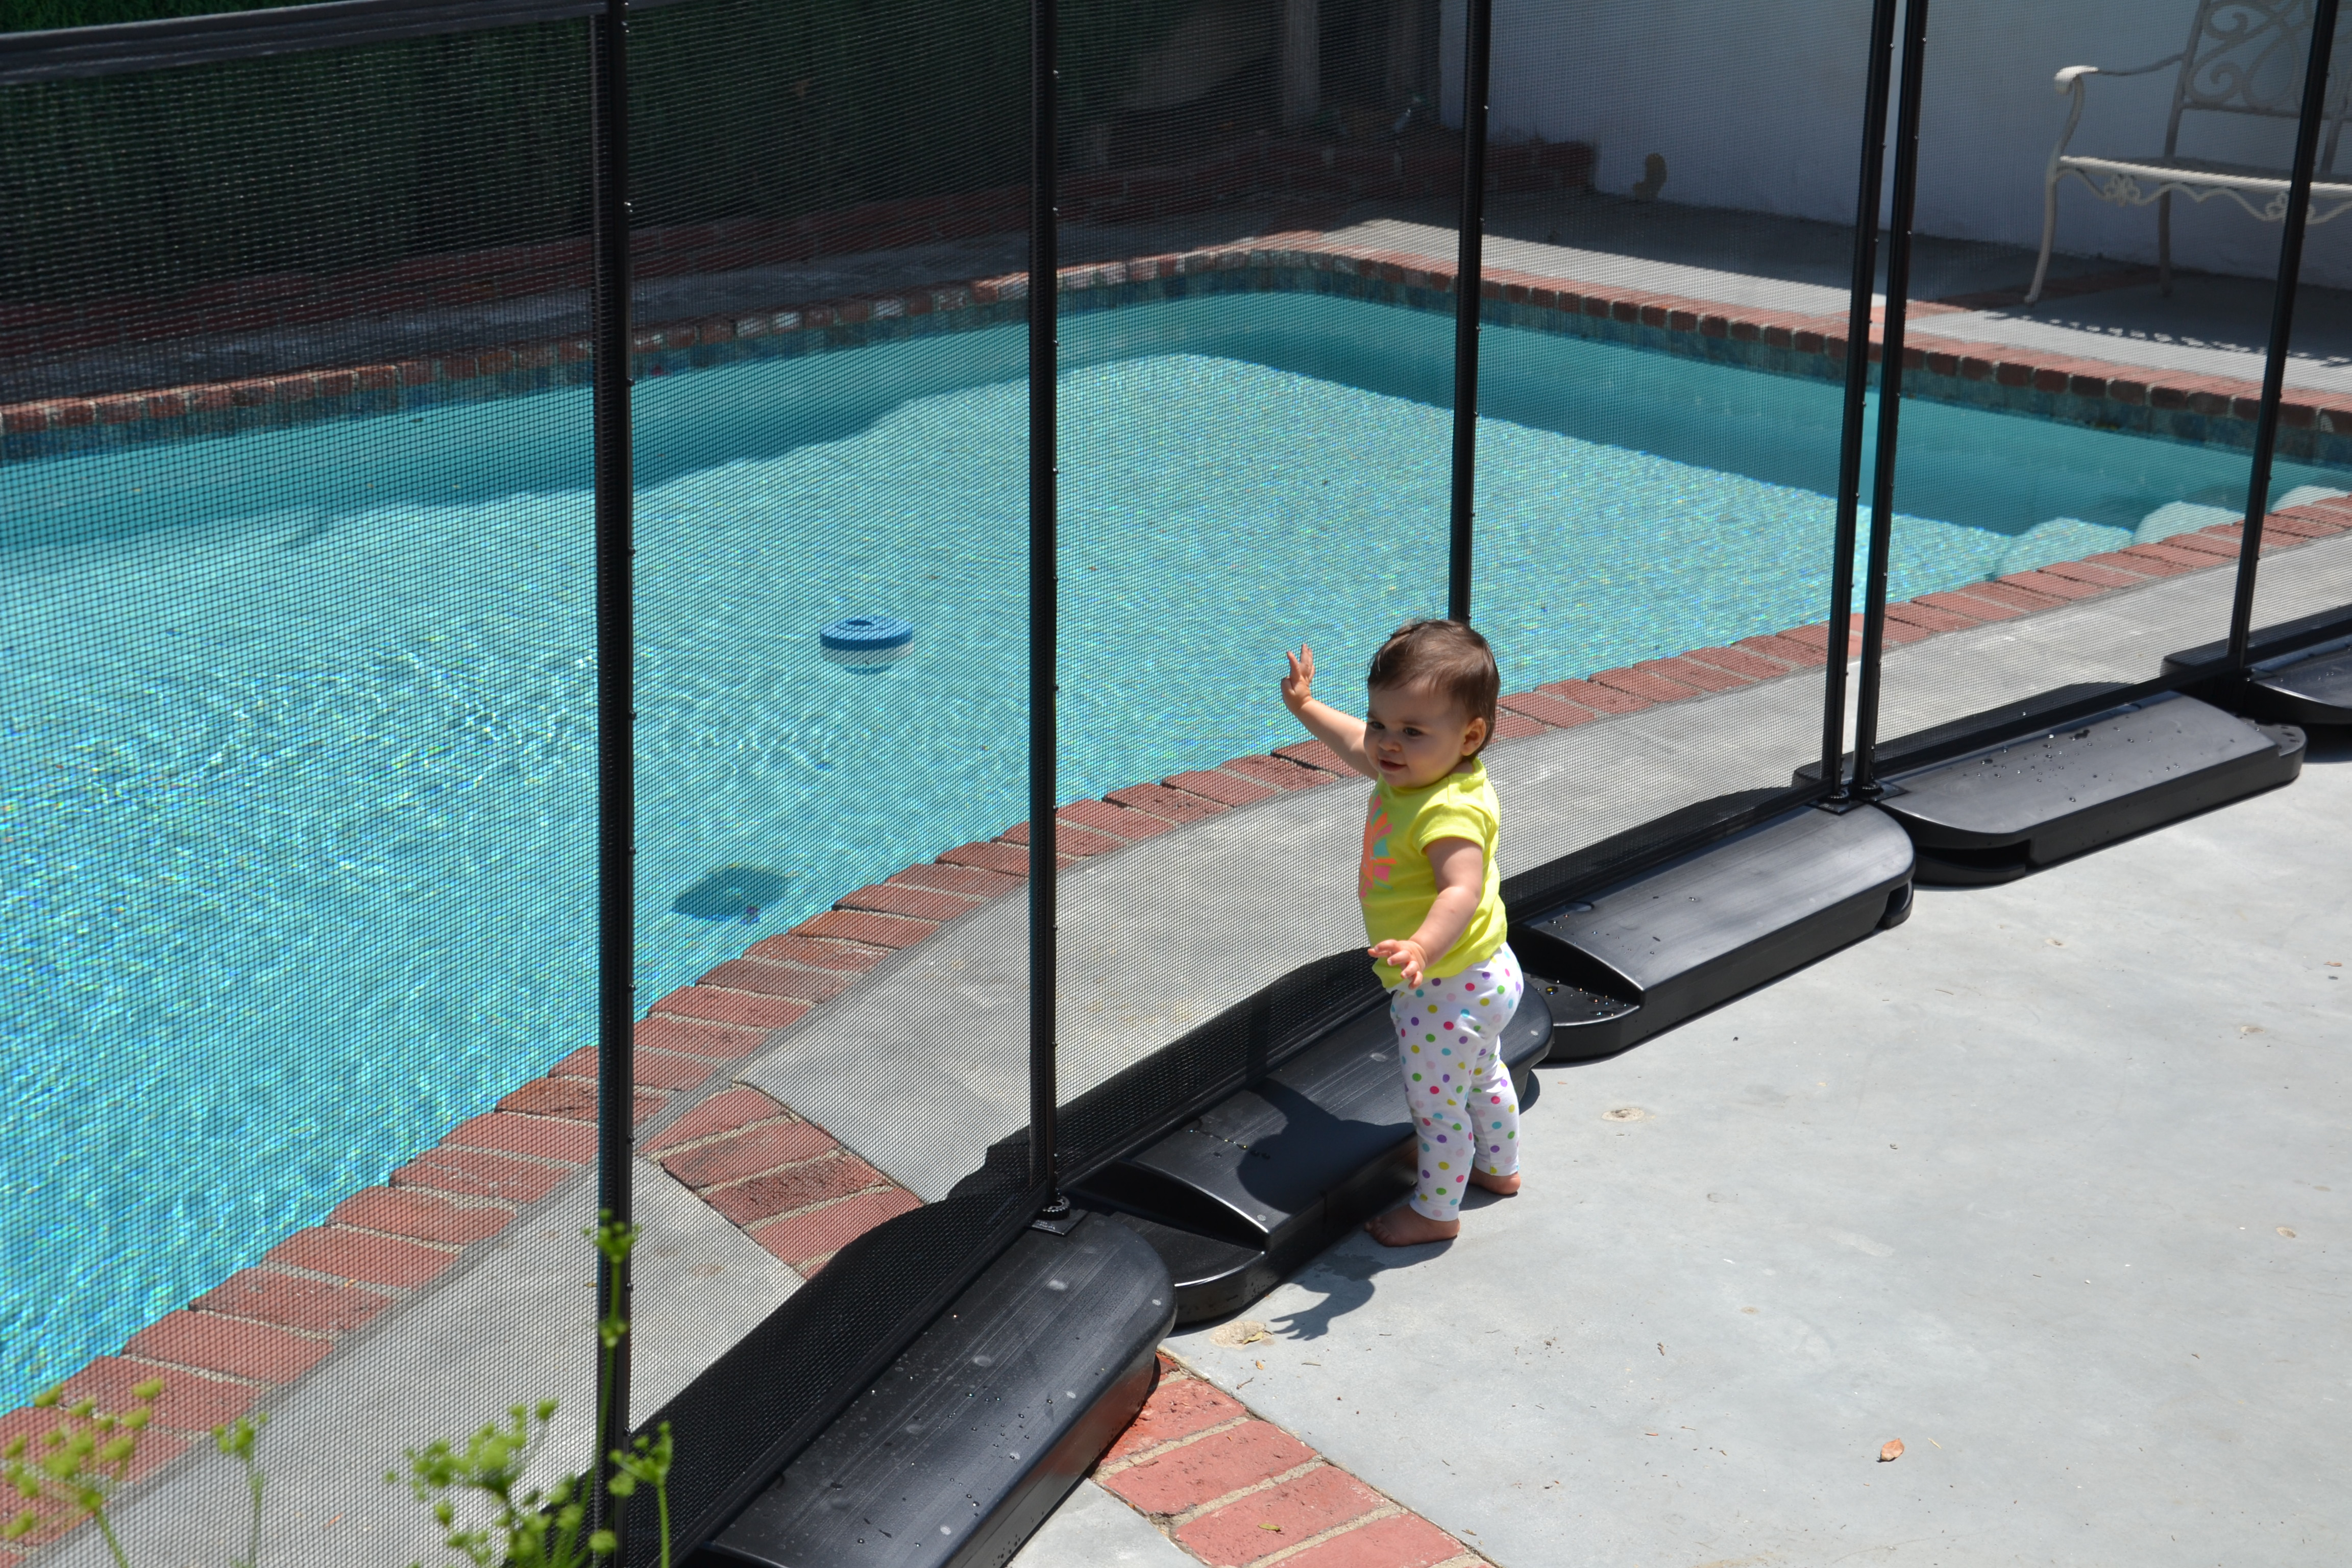 Temporary Pool Fences Childguard Diy Pool Fence inside size 4608 X 3072